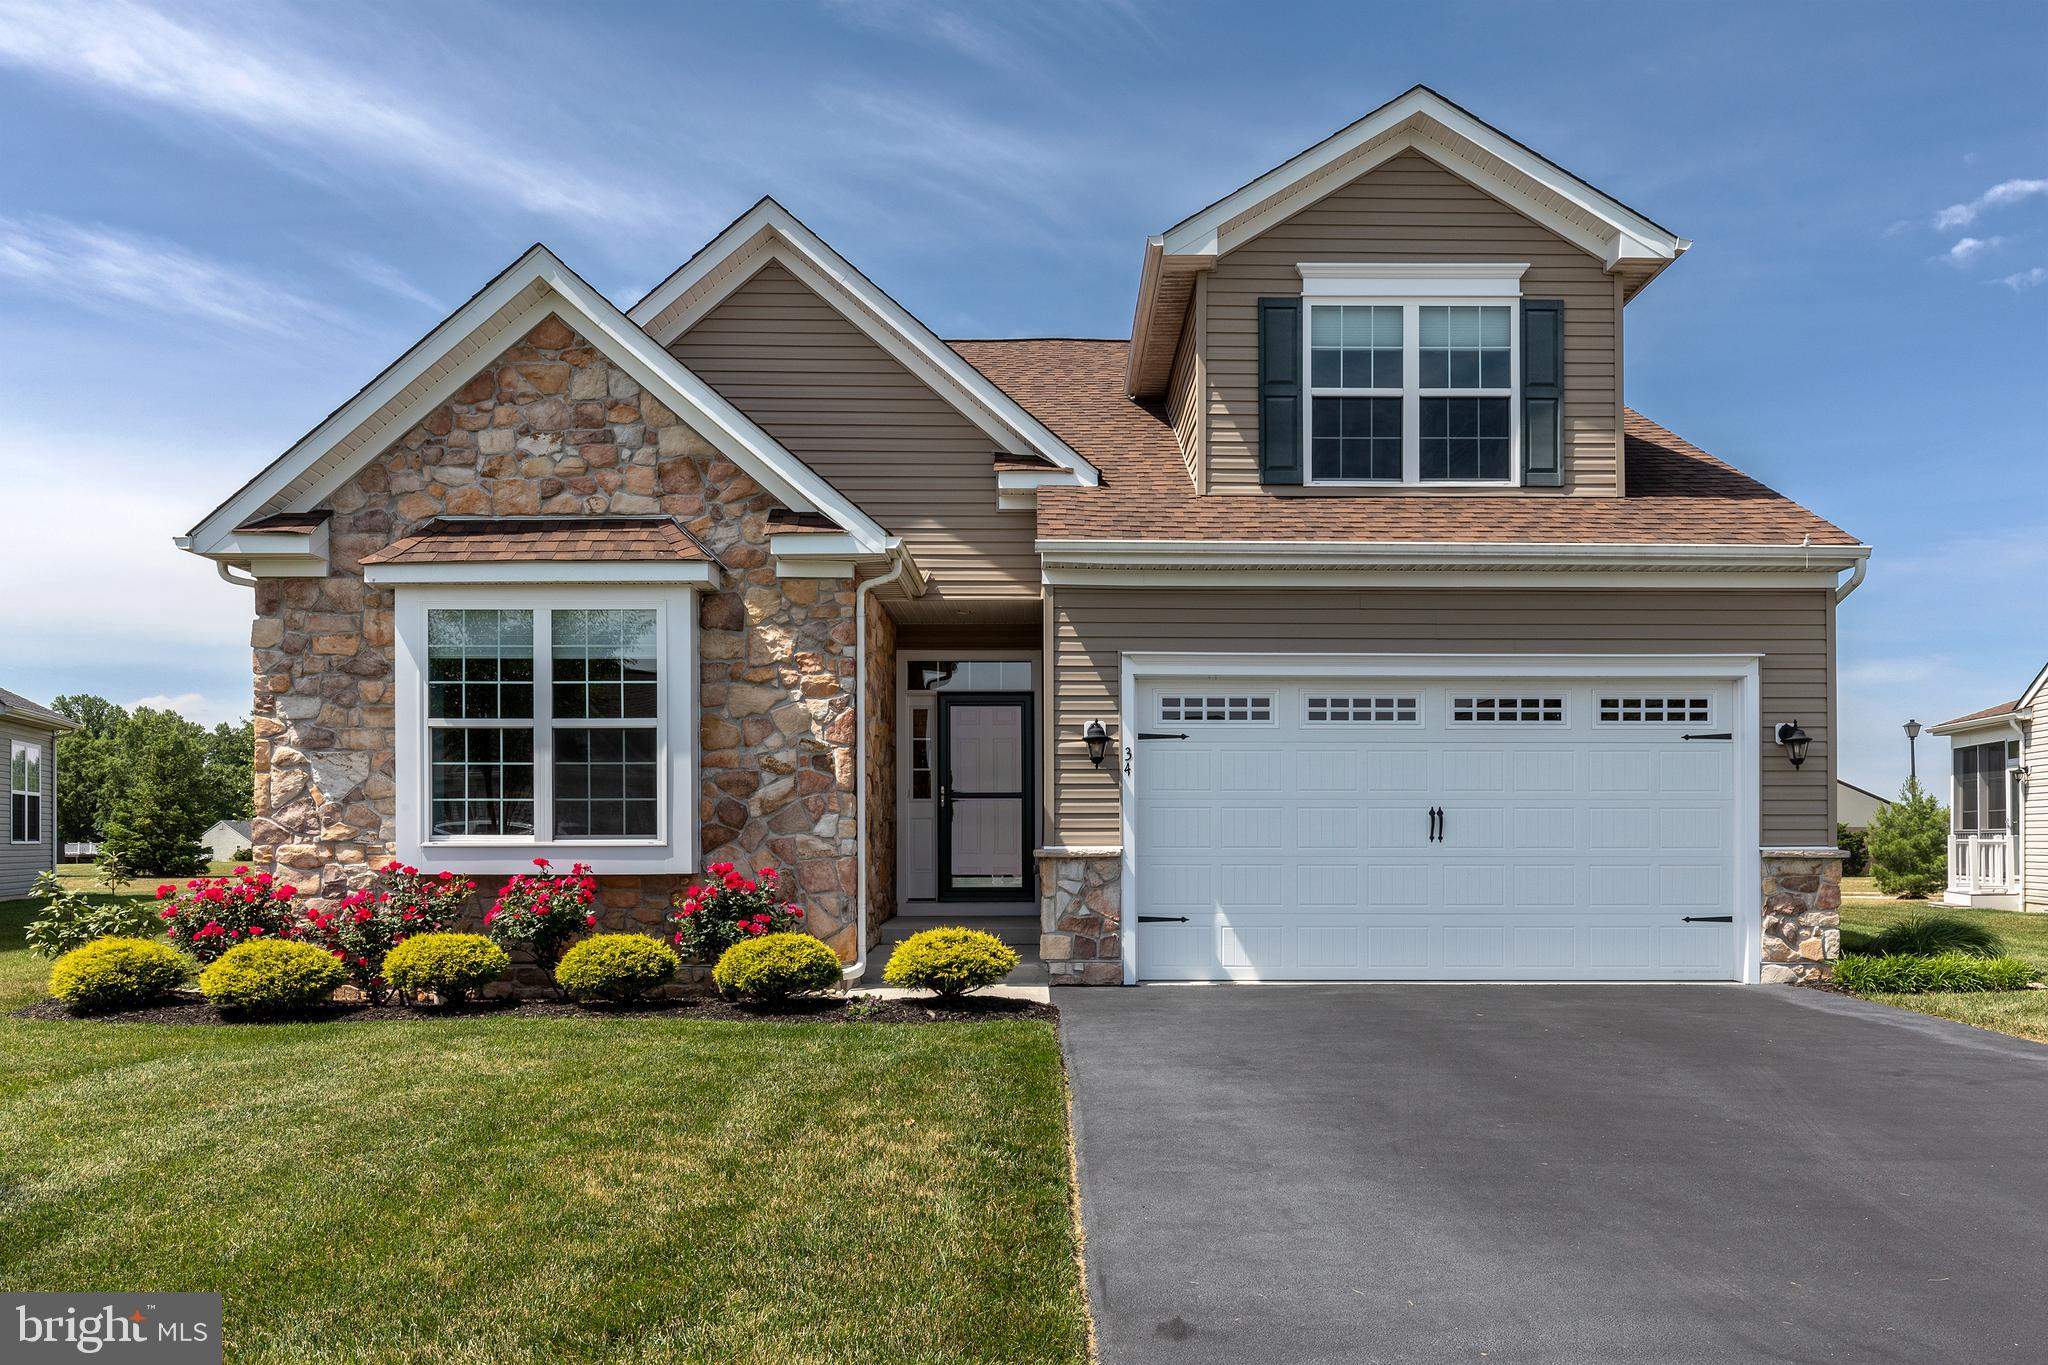 """Welcome home! The popular Active Adult Community of Champions Club is in a perfect location. 30 minutes north of the beaches and minutes from Dover, situated next to Jonathon's Landing golf course.  The amenities are fantastic with a large Club House and outdoor pool. Outside, this home features a stone front accent and beautiful landscaping. Step into the large foyer and notice the custom paint colors throughout and the hardwood floors. A nice-sized guest room is currently being used as an office with an adjacent full bath.  Next, notice the formal dining room just off the kitchen. The kitchen is large with granite countertops,  a peninsula, and a breakfast area.  A large great room with a fireplace and a sunroom leading out to the deck. Upgraded window treatments throughout. The Owners Suite is large with a walk-in closet and 2nd closet and of course a full owners bath. Now head upstairs to a 3rd bedroom with a full bath and private loft. Don't forget to check out the crawlspace. This is a conditioned crawlspace with a concrete floor and almost 5'-0"""" tall. It is like a short basement."""